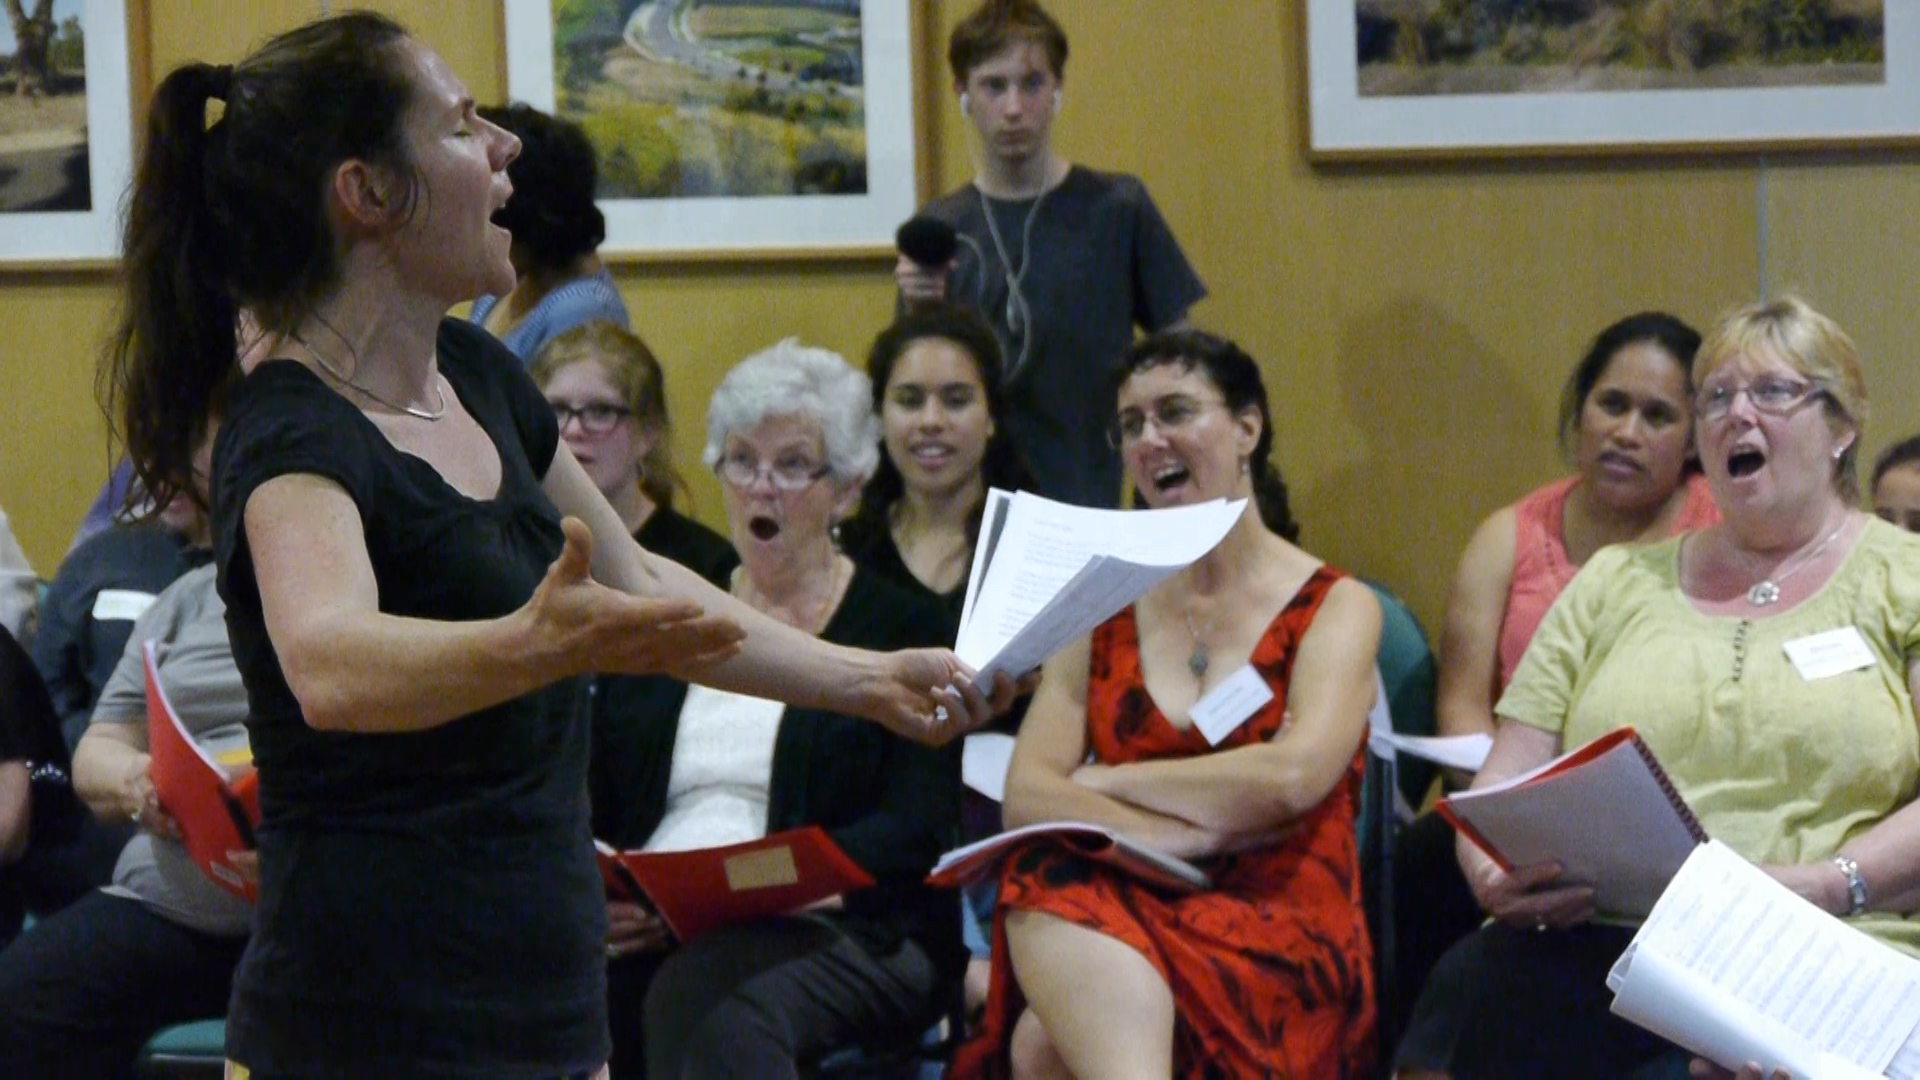 A scene from Andrew Garton's documentary film 'This Choir Sings Carols'.